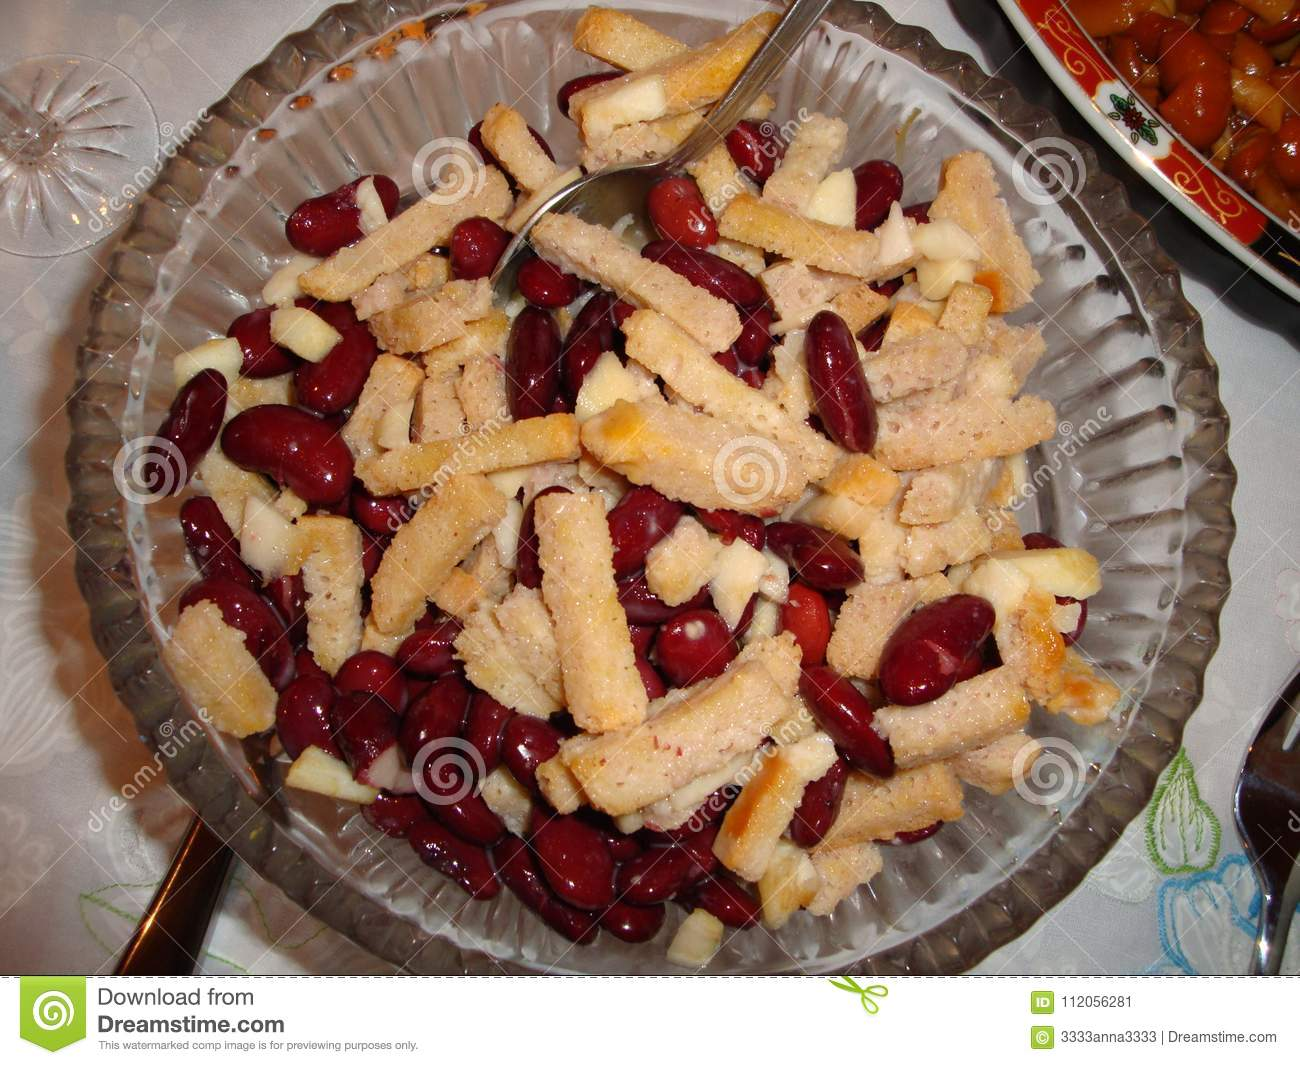 Red bean salad with crackers, chopped onions and peeled apples.